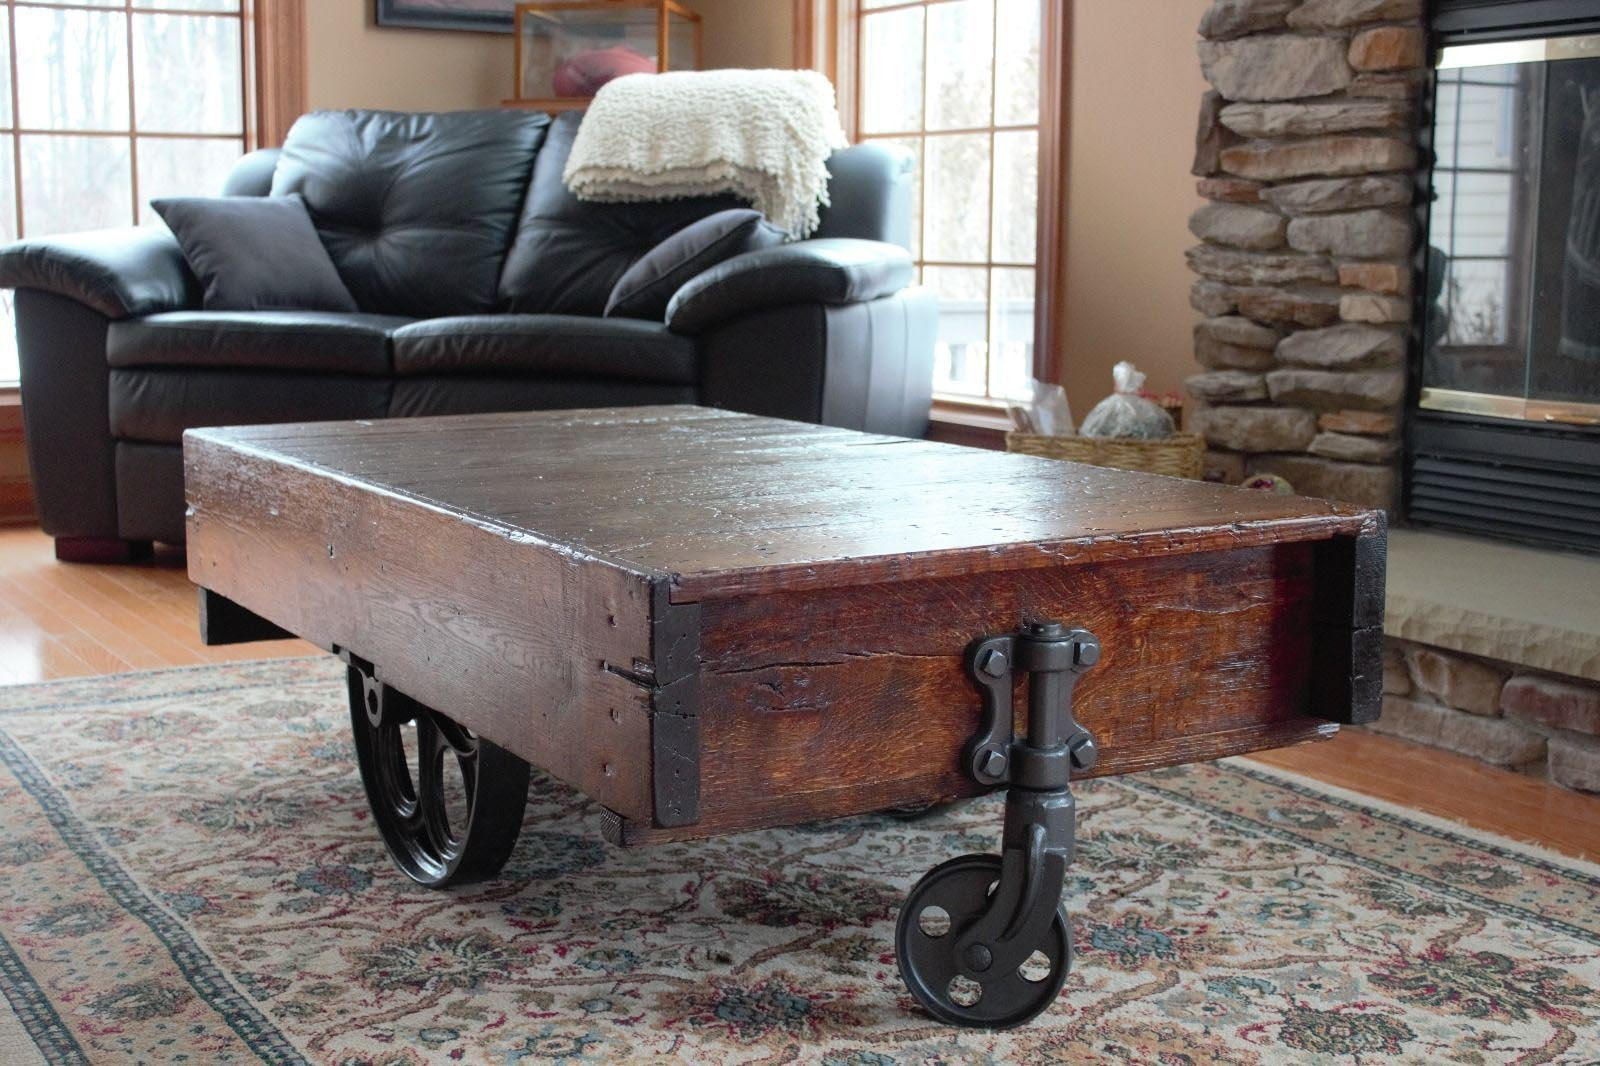 Antique coffee table with wheels coffee table design ideas Antique wheels for coffee table